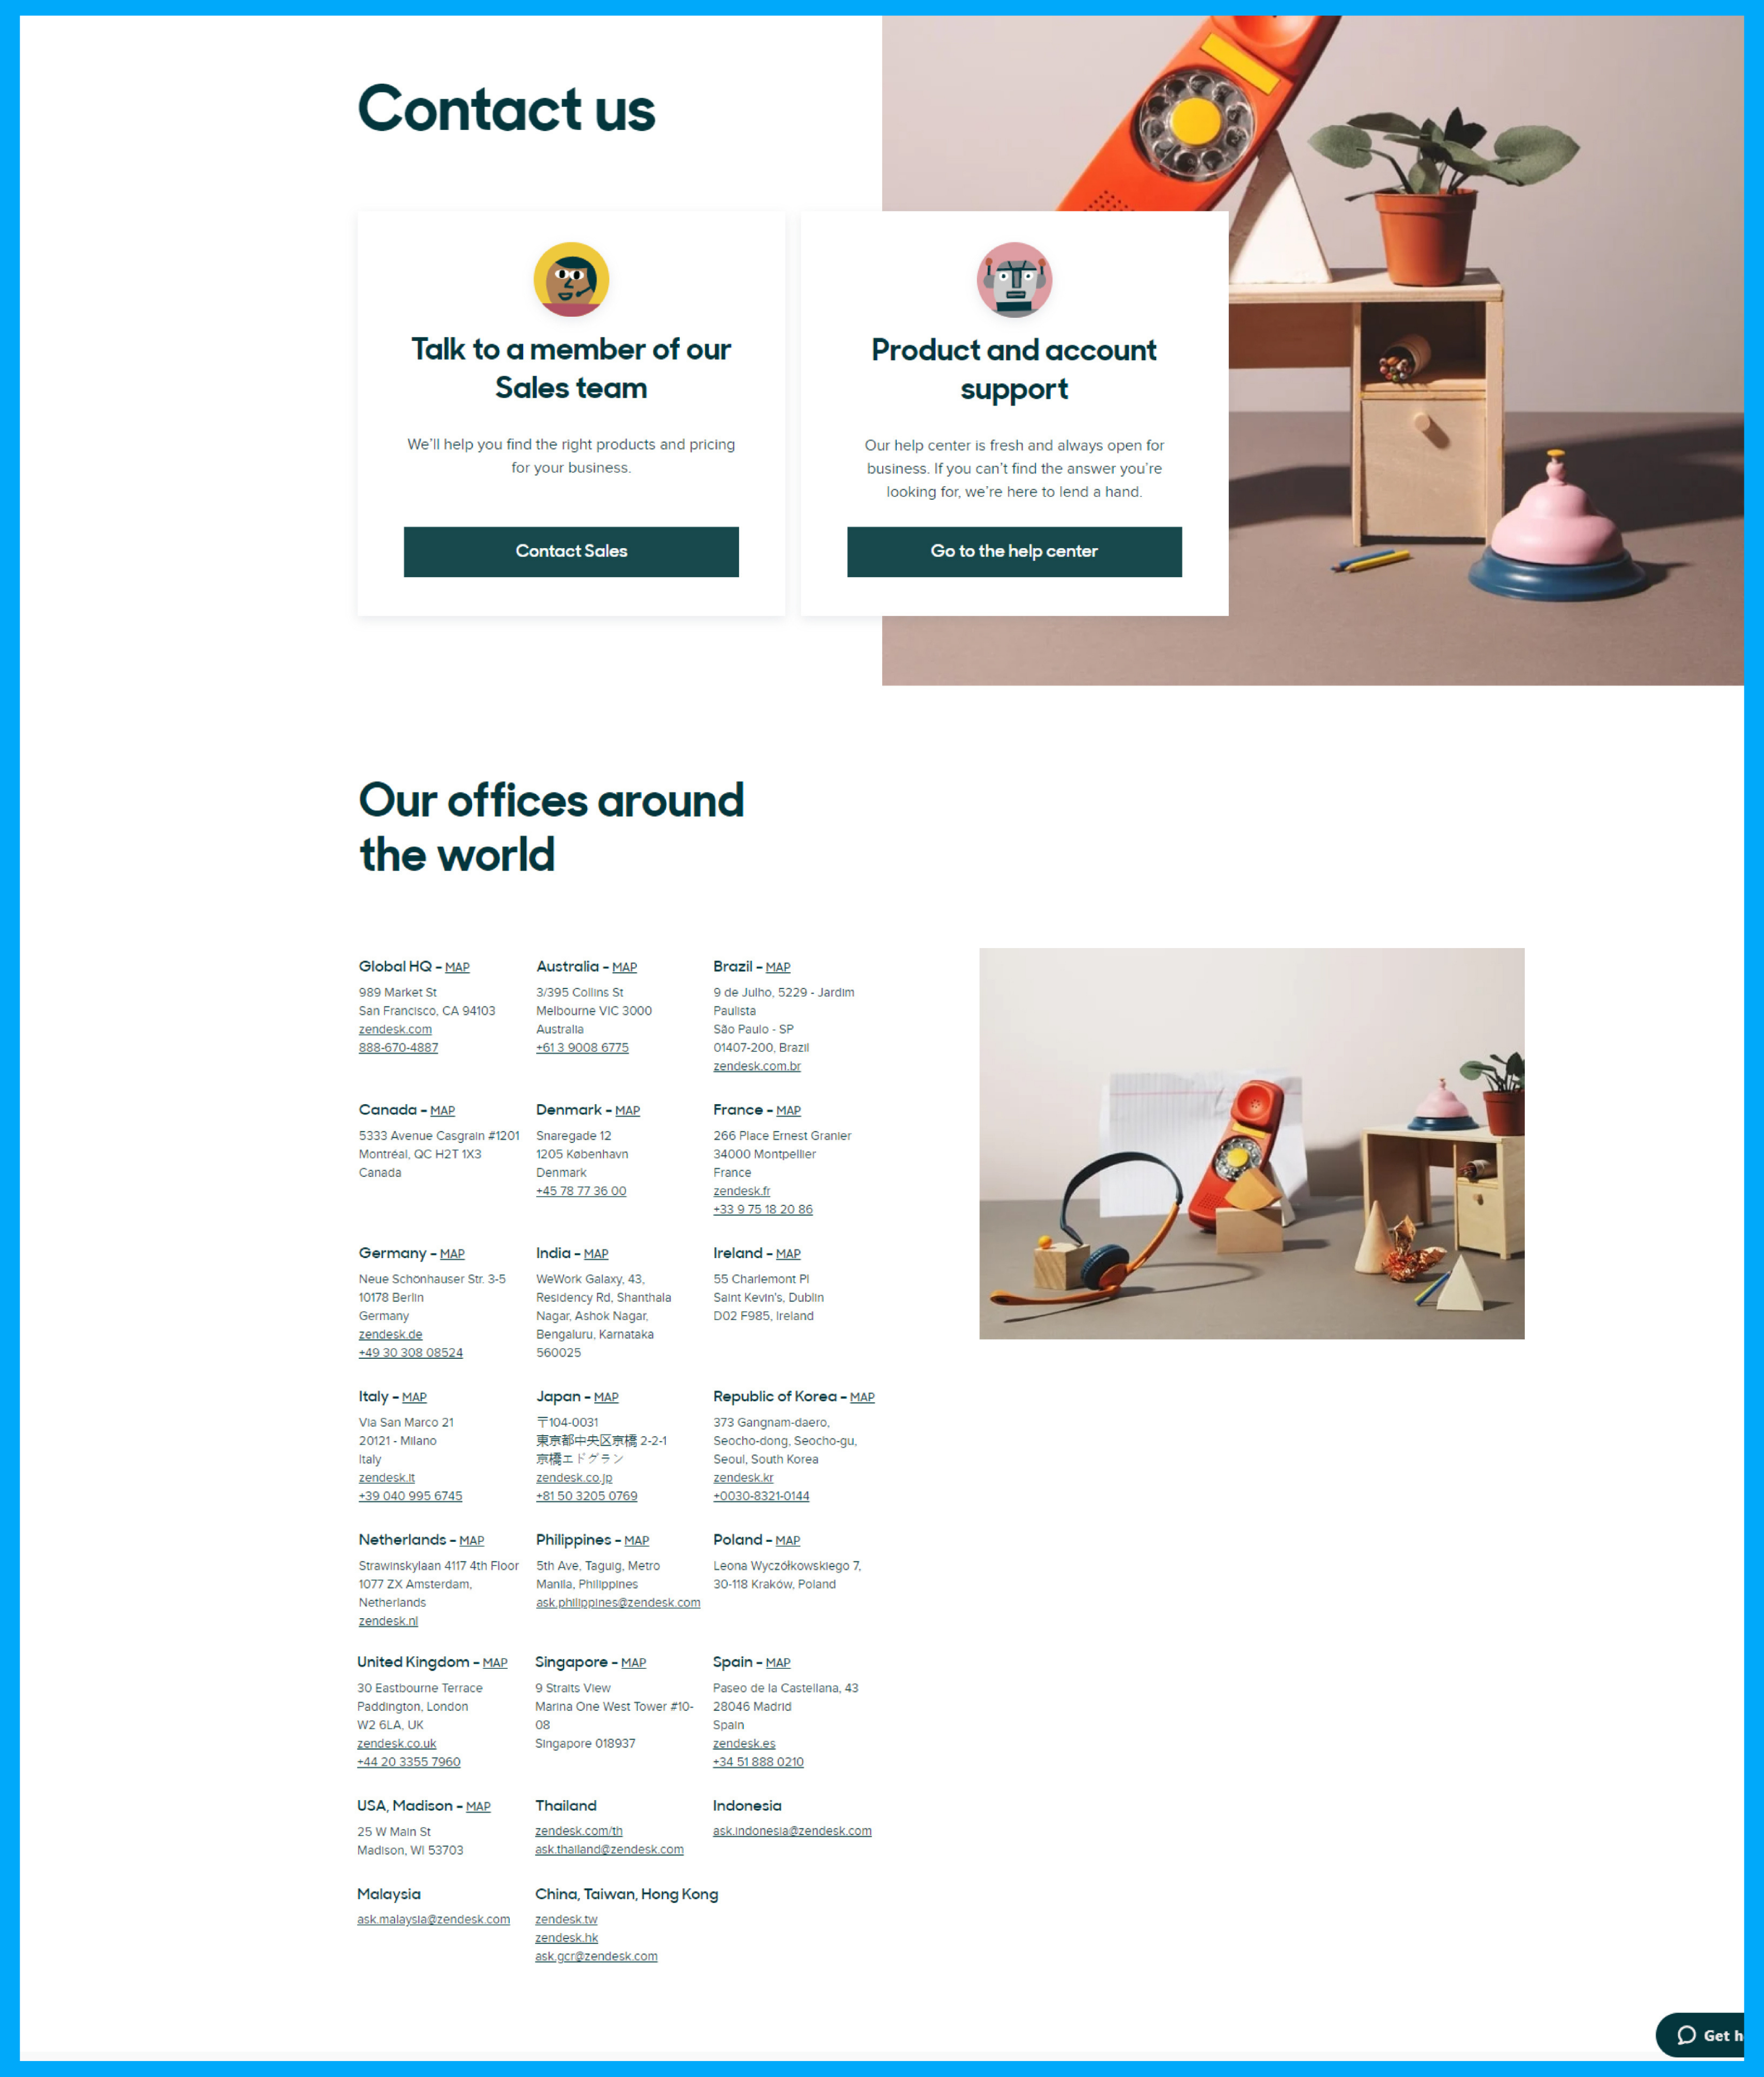 Zendesk contact us page